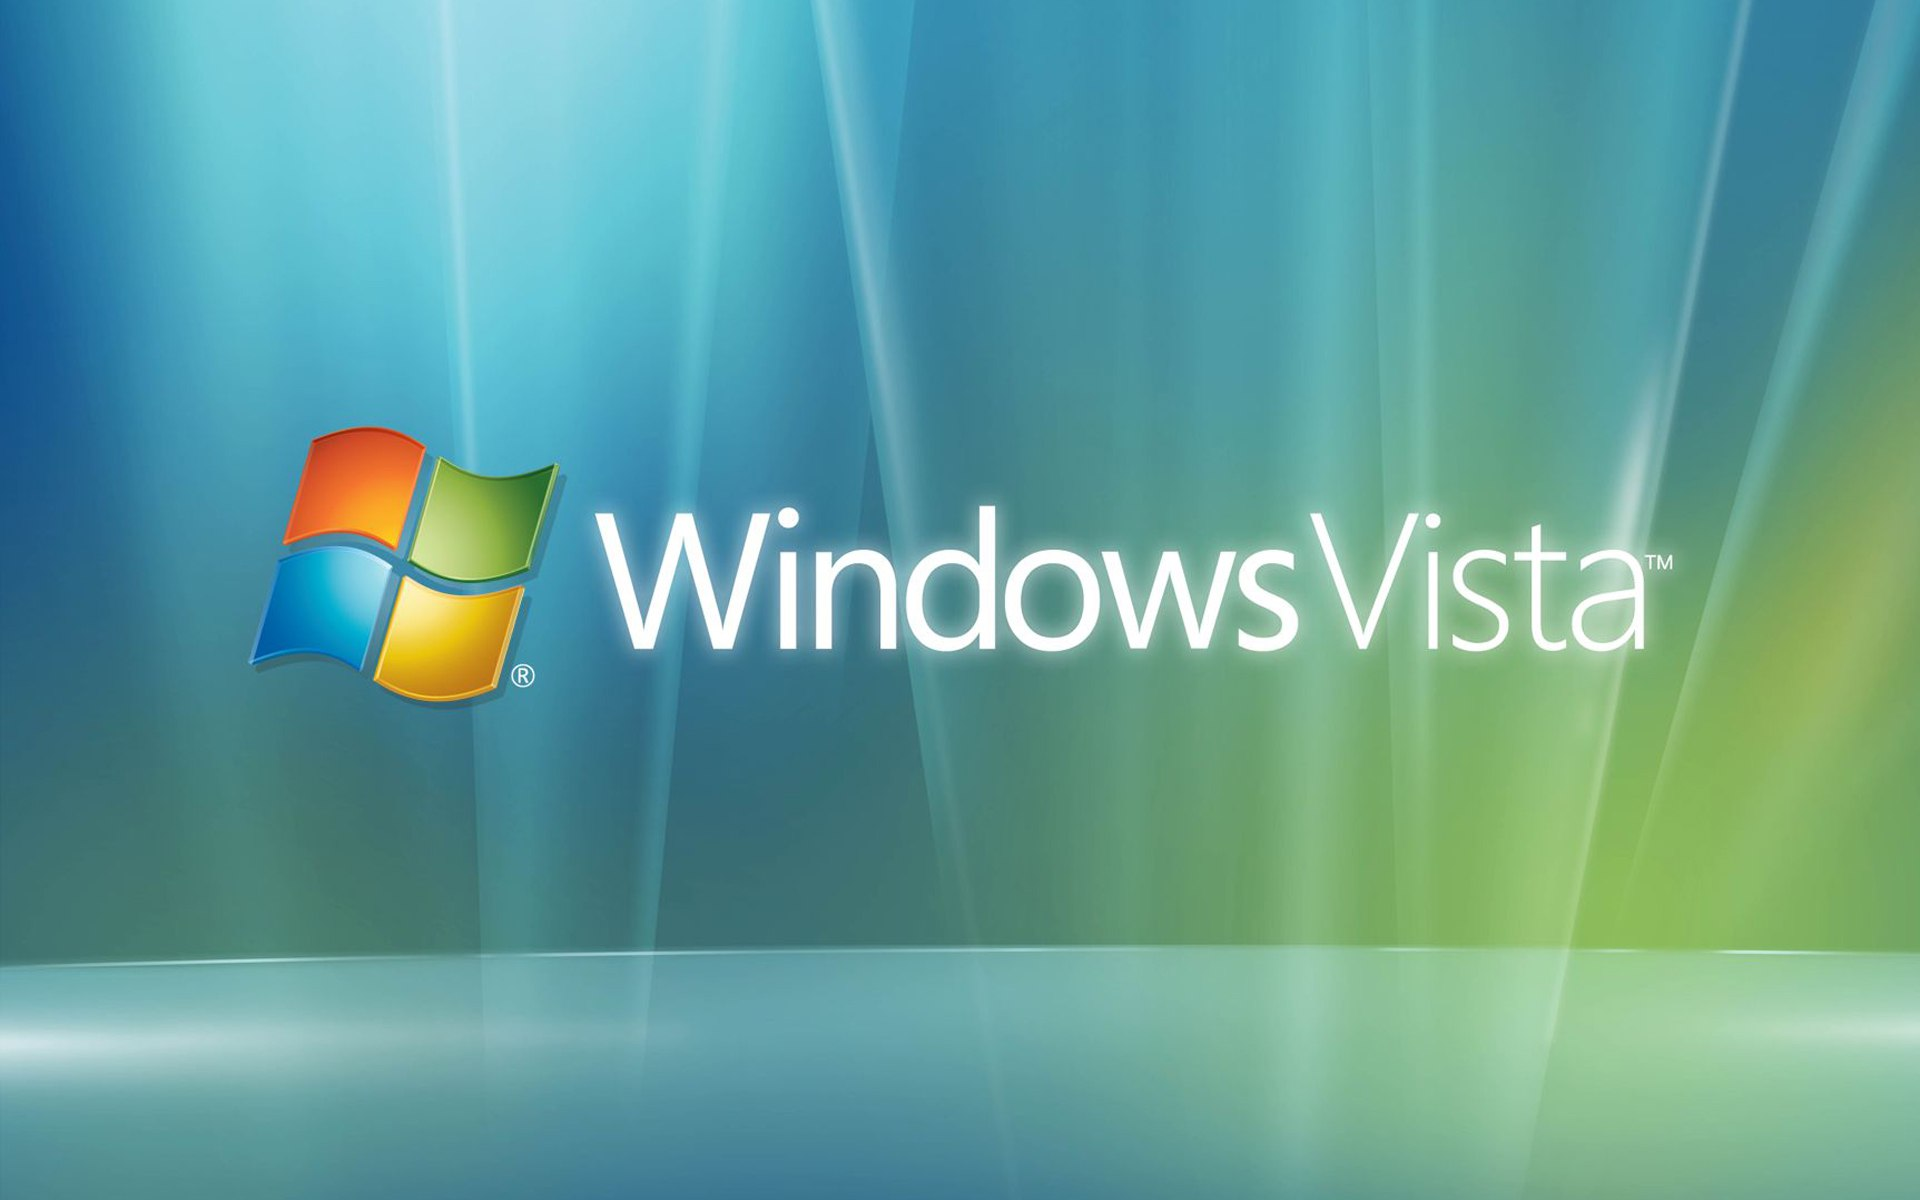 Parche para Windows Vista que promete mucho